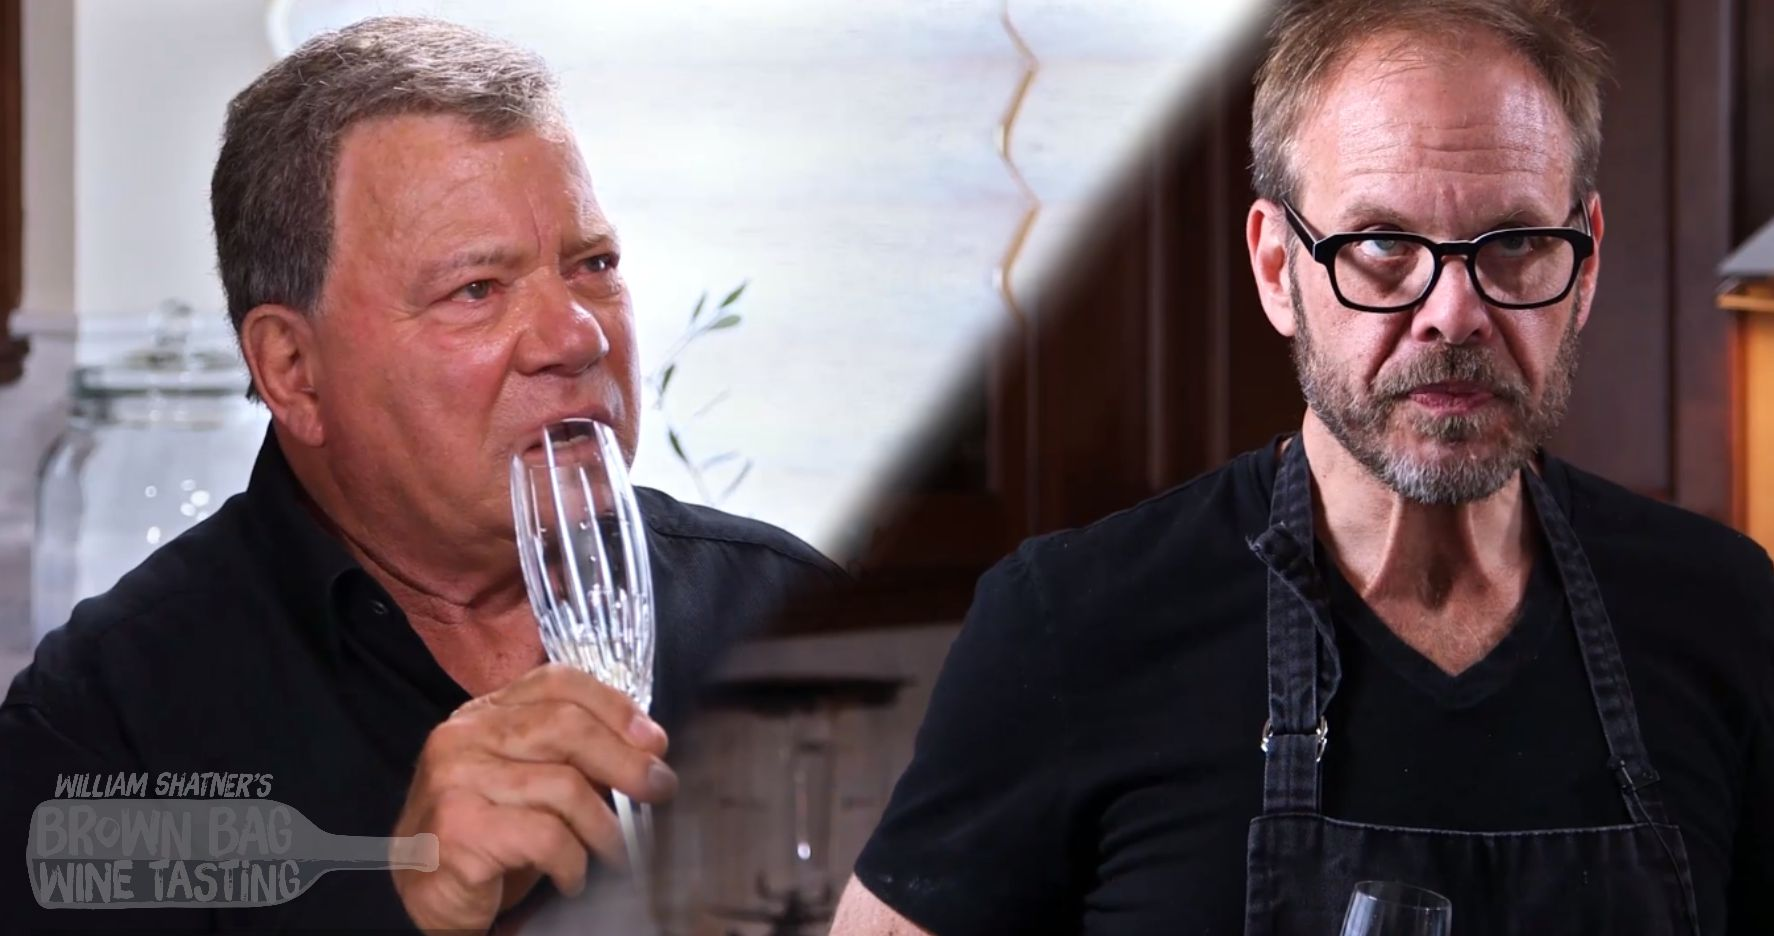 Alton Brown on Brown Bag Wine Tasting with William Shatner